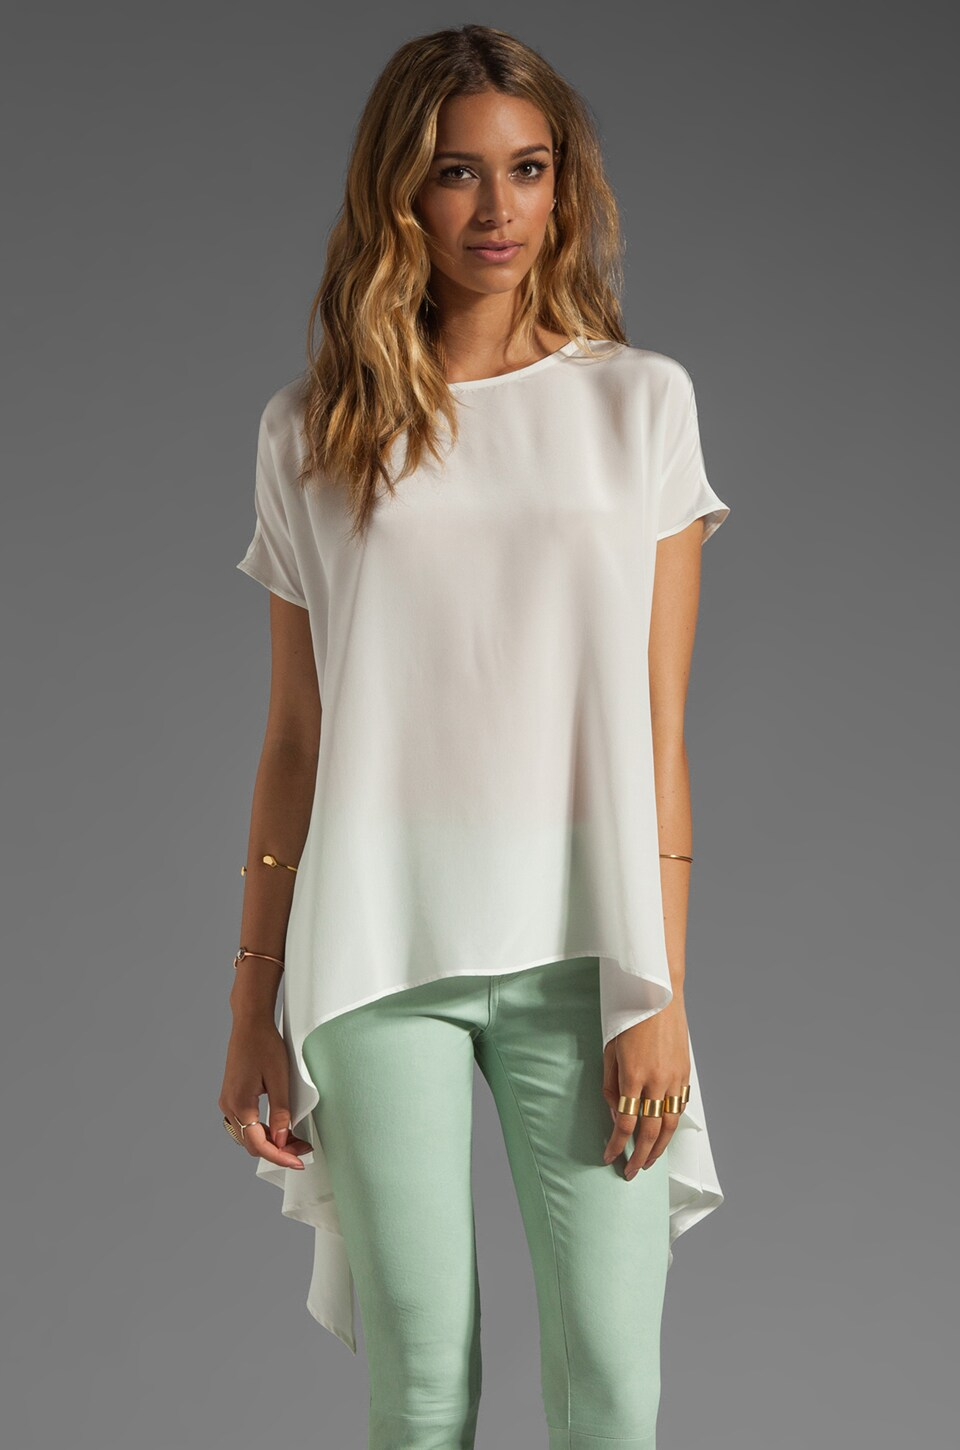 Talulah Uneven Hemline Top in White